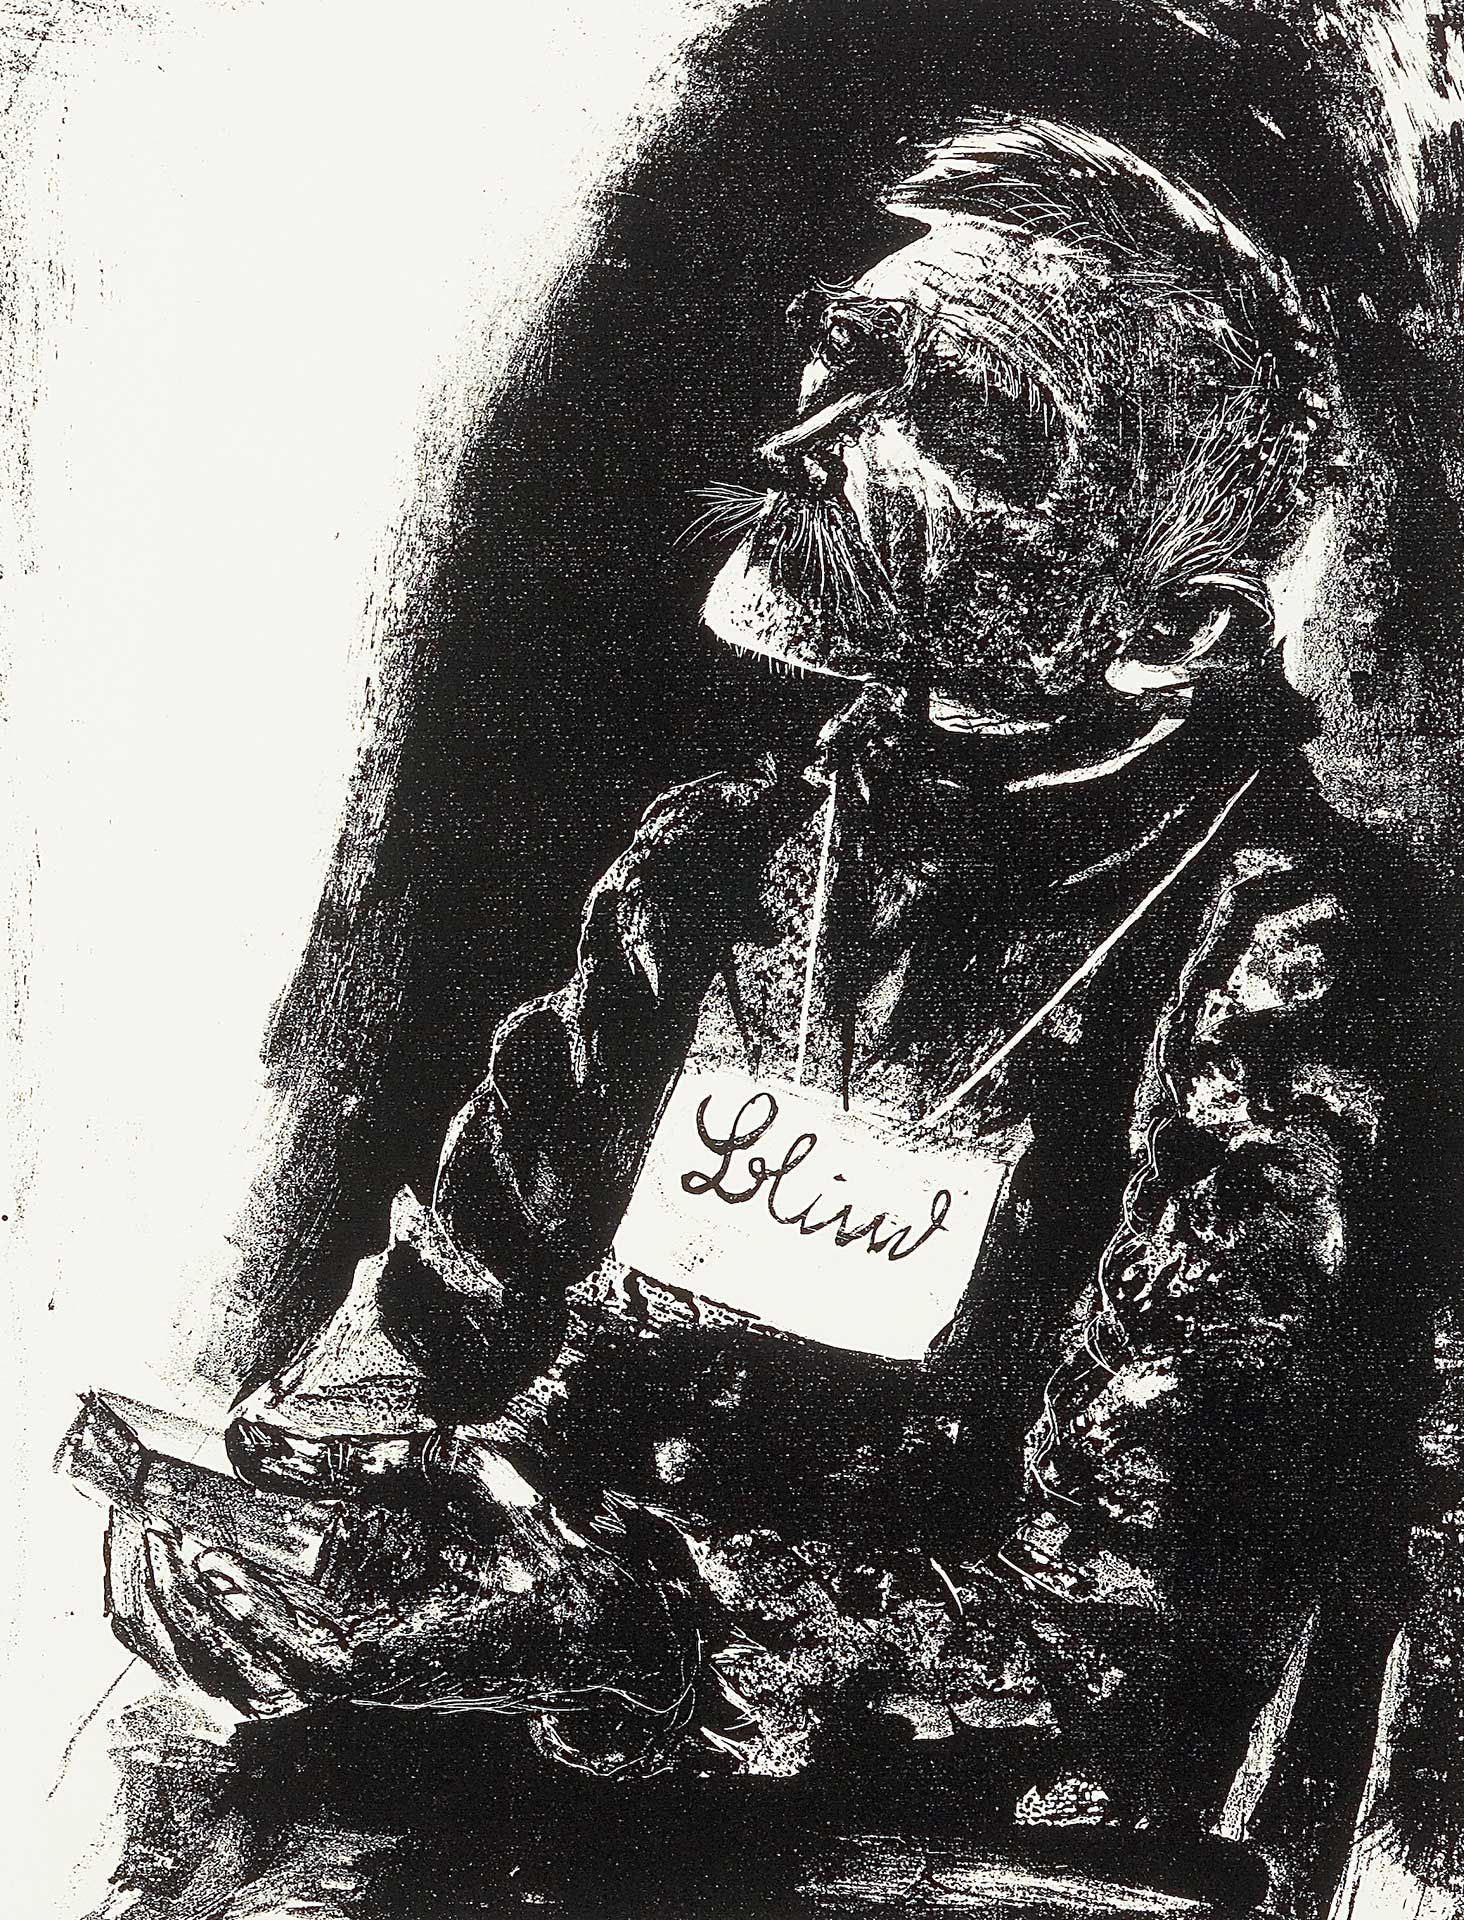 Otto Dix (1891-1969), The Blind Man, 1923, lithograph, only state. MMFA, purchase, Wake Robin Fund in memory of Nelo St.B. Harrison. © Estate of Otto Dix / SOCAN (2020)